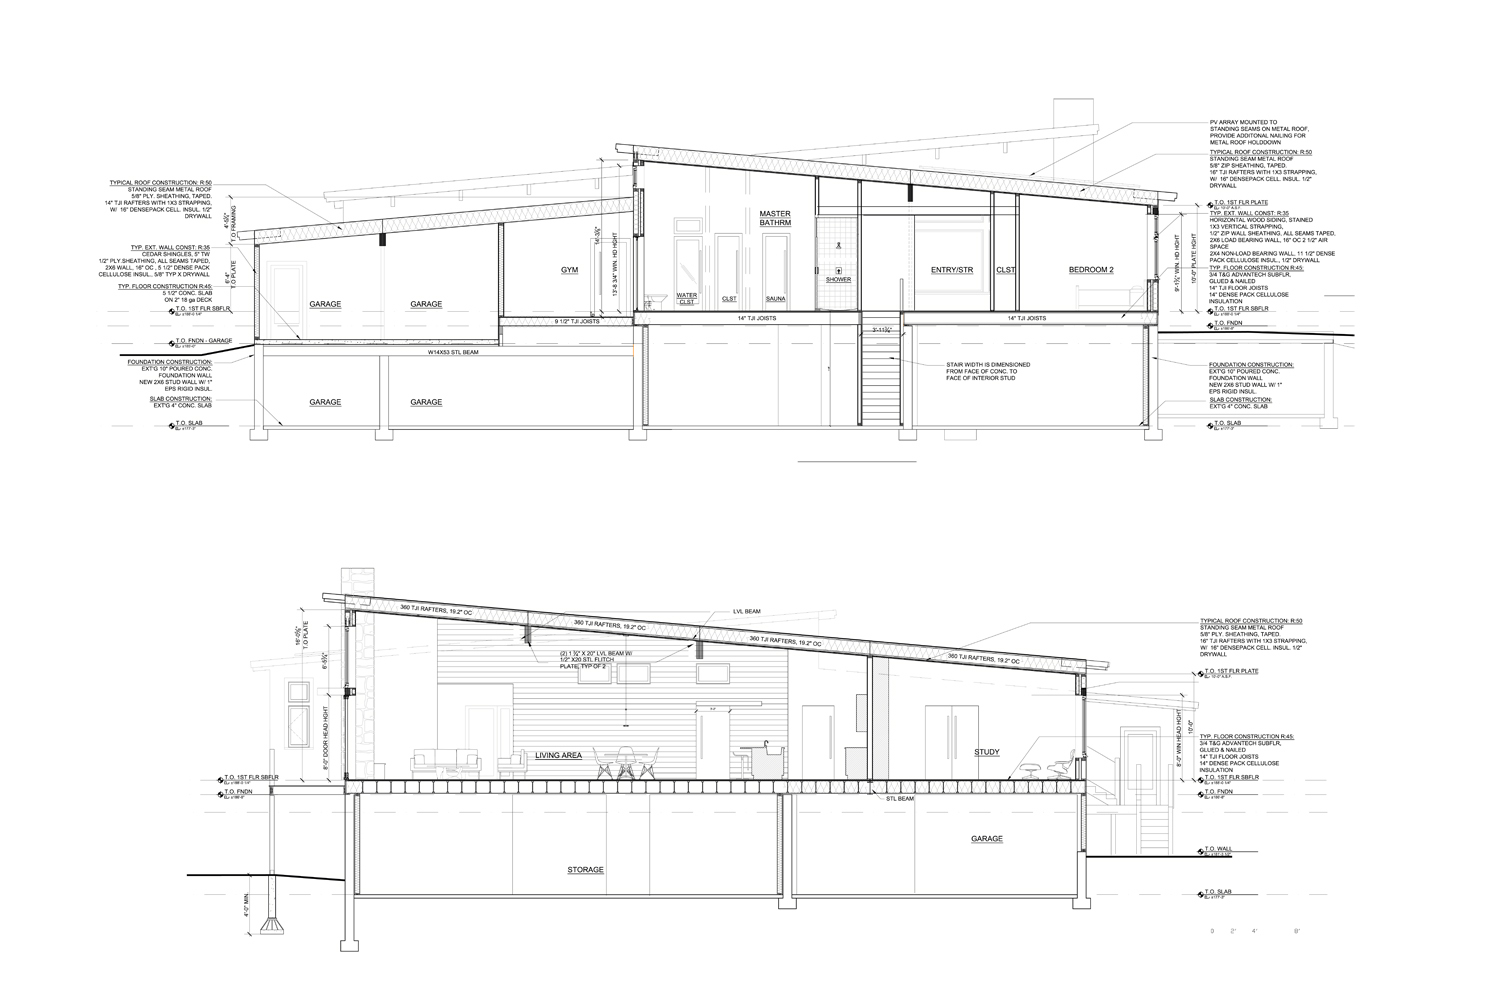 Construction Documents Phase: Sections through Net Zero Lincoln